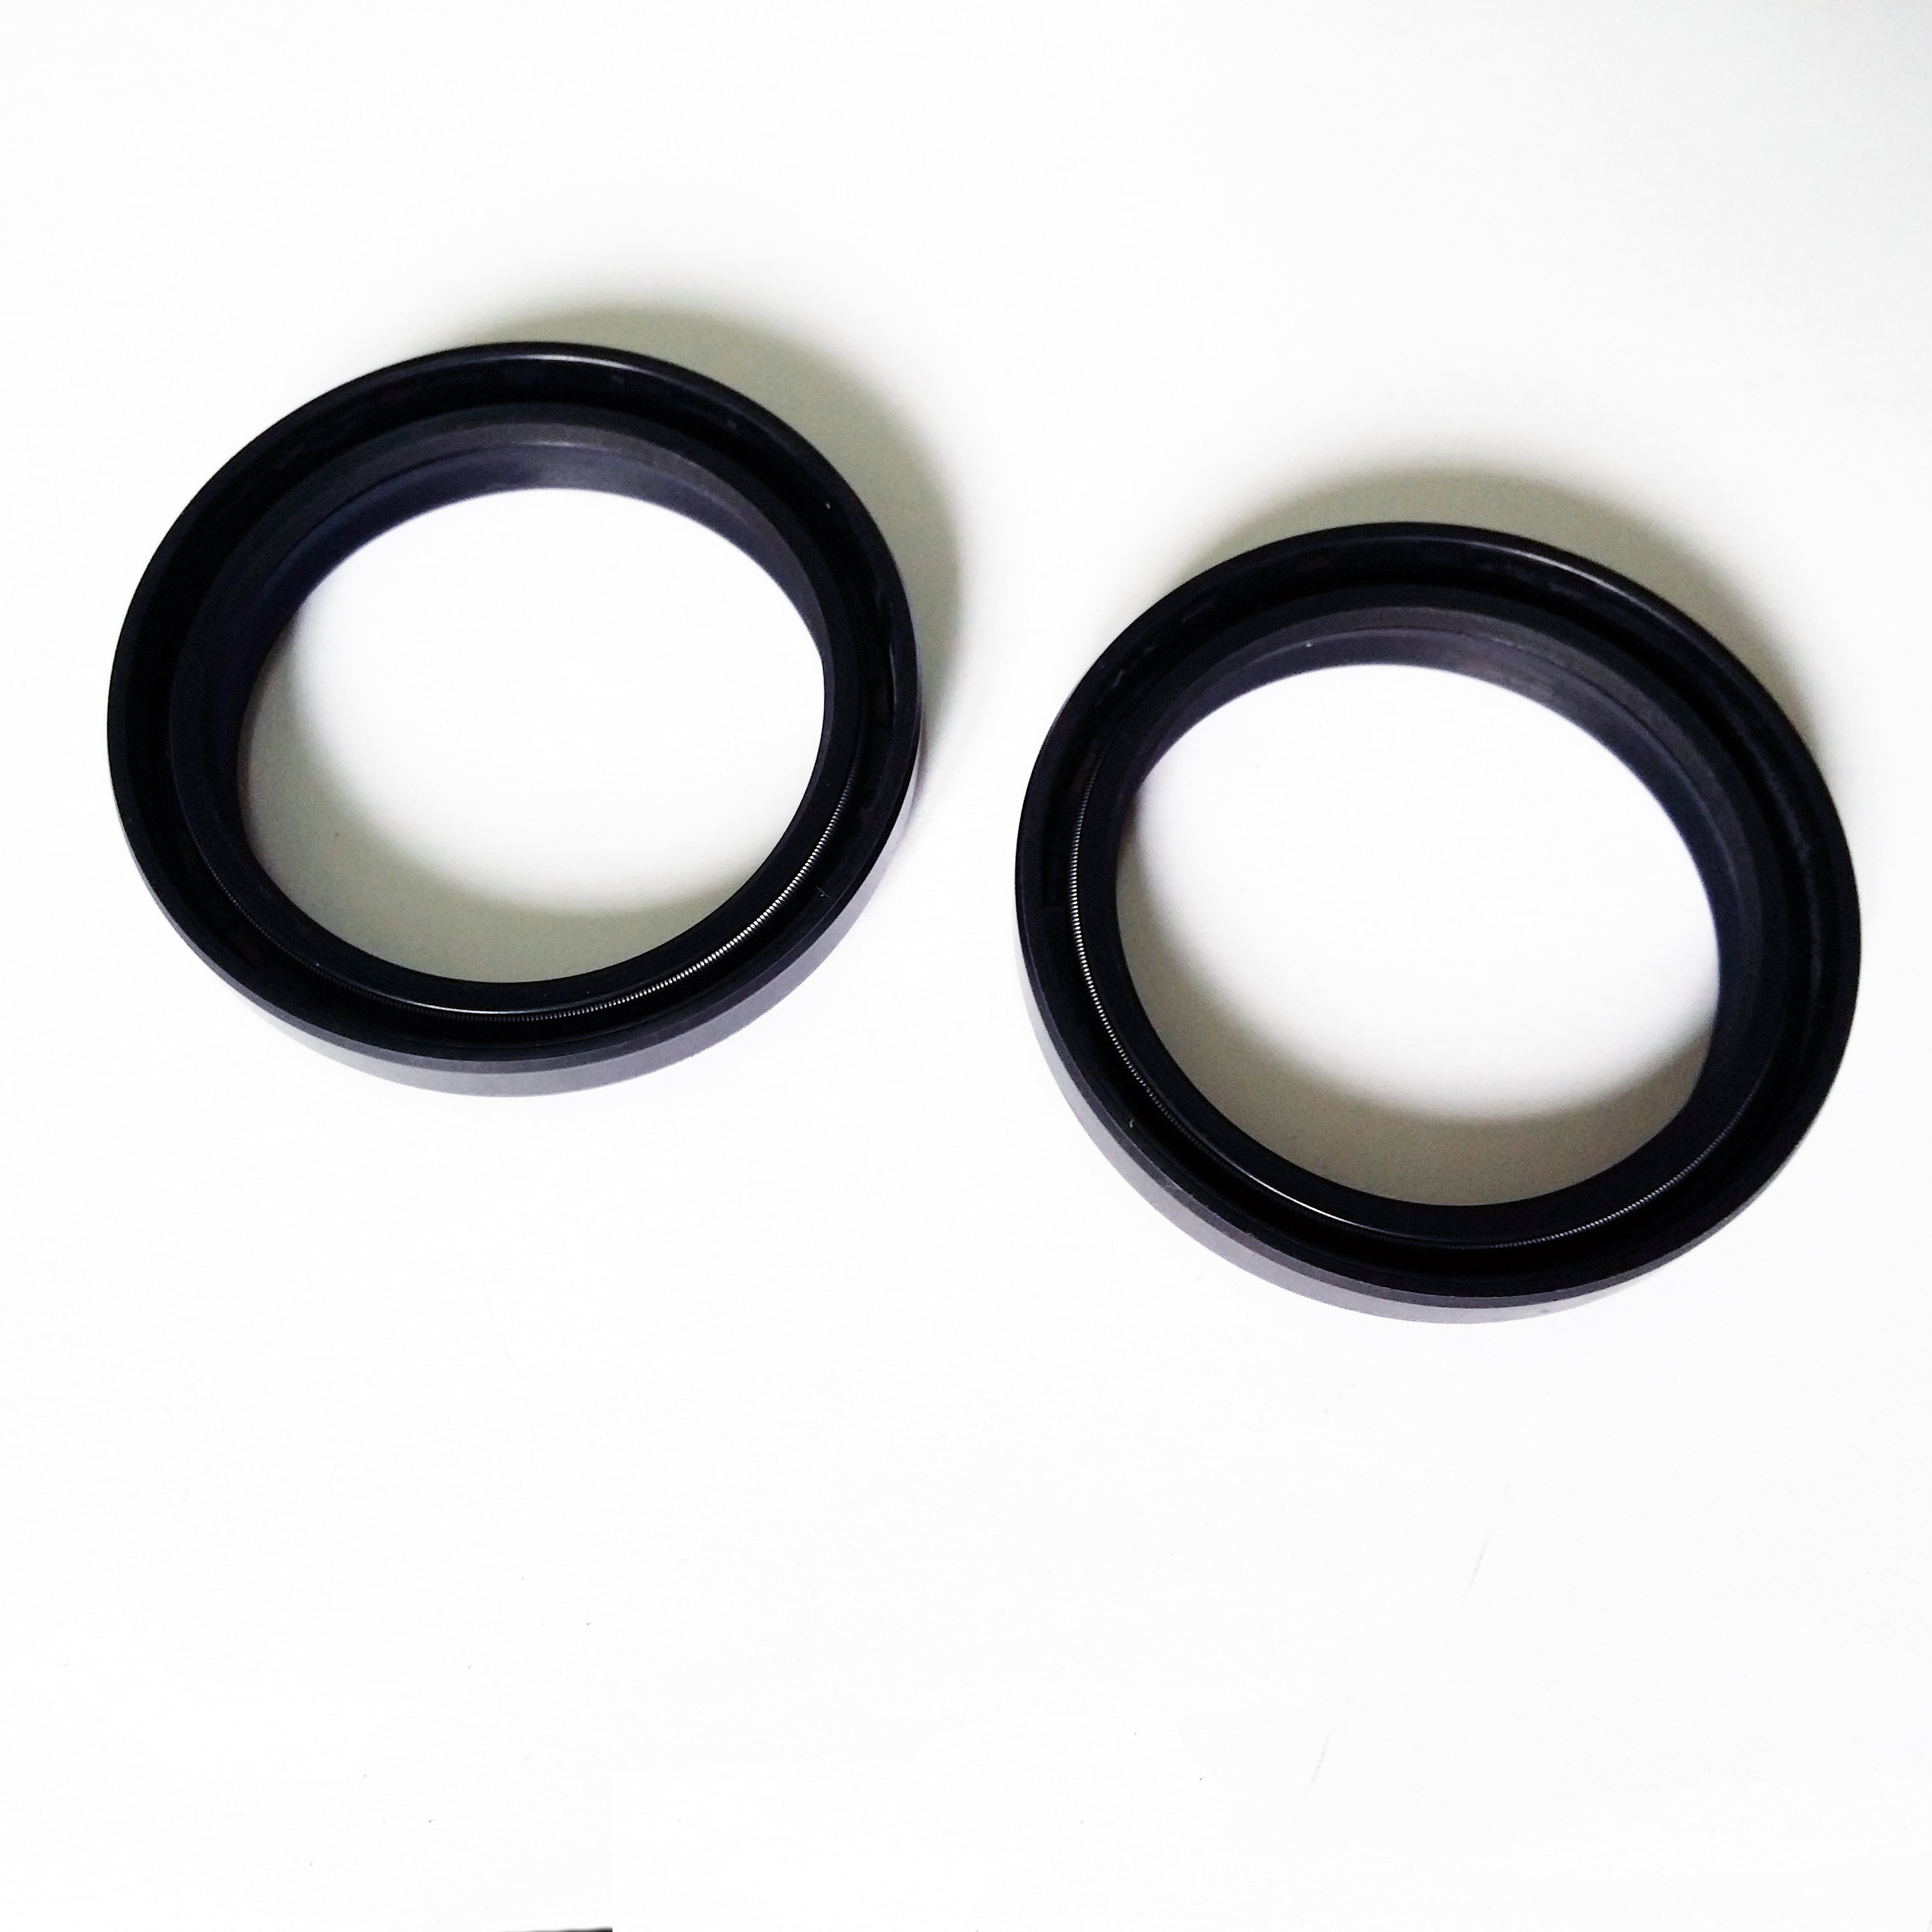 K-Tech Honda X11   1999-2005 NOK Front Fork Oil Seals 43x54x11mm